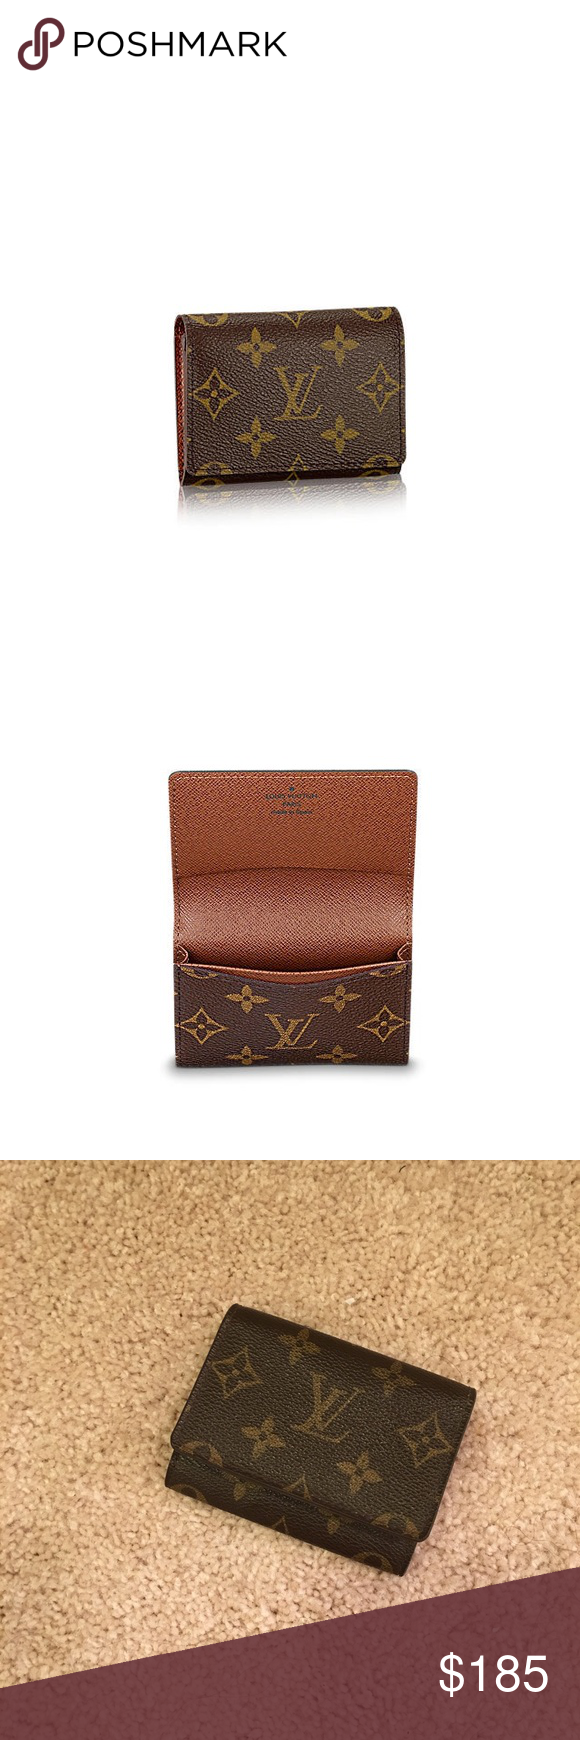 Louis Vuitton Business Card Holder | Business card case, Business ...